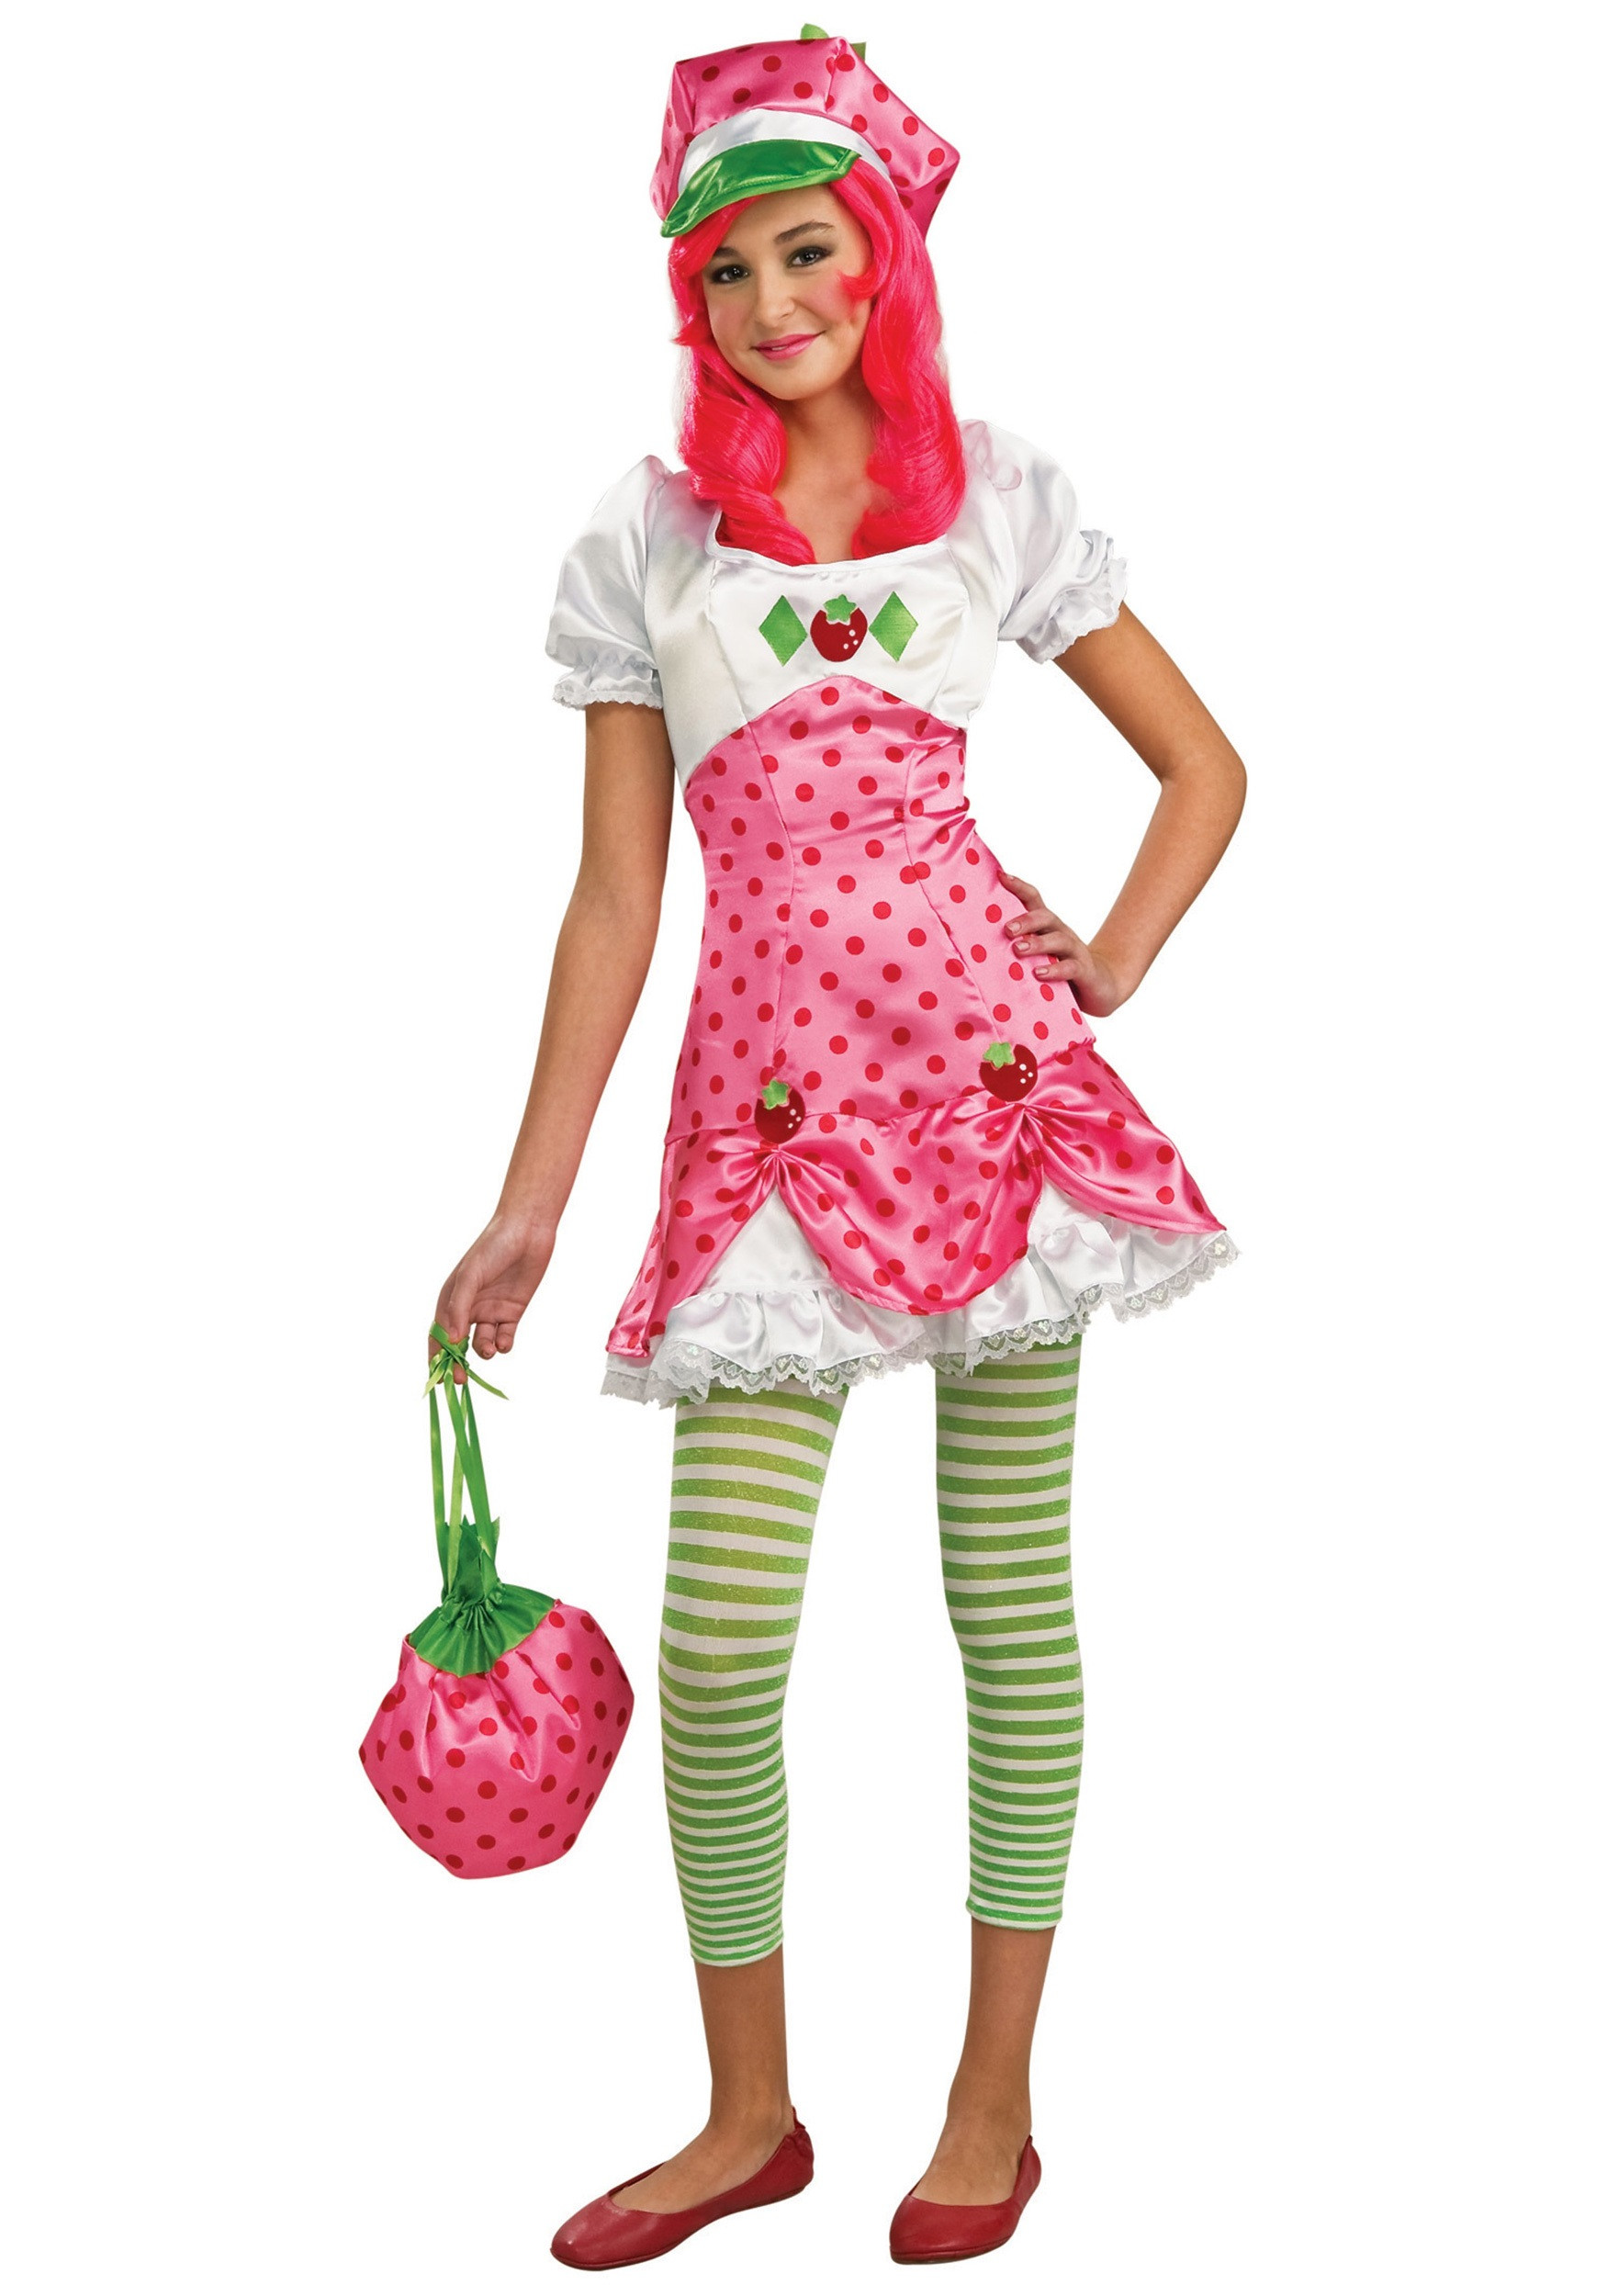 Strawberry Shortcake Halloween Costumes  Deluxe Strawberry Shortcake Costume Strawberry Shortcake